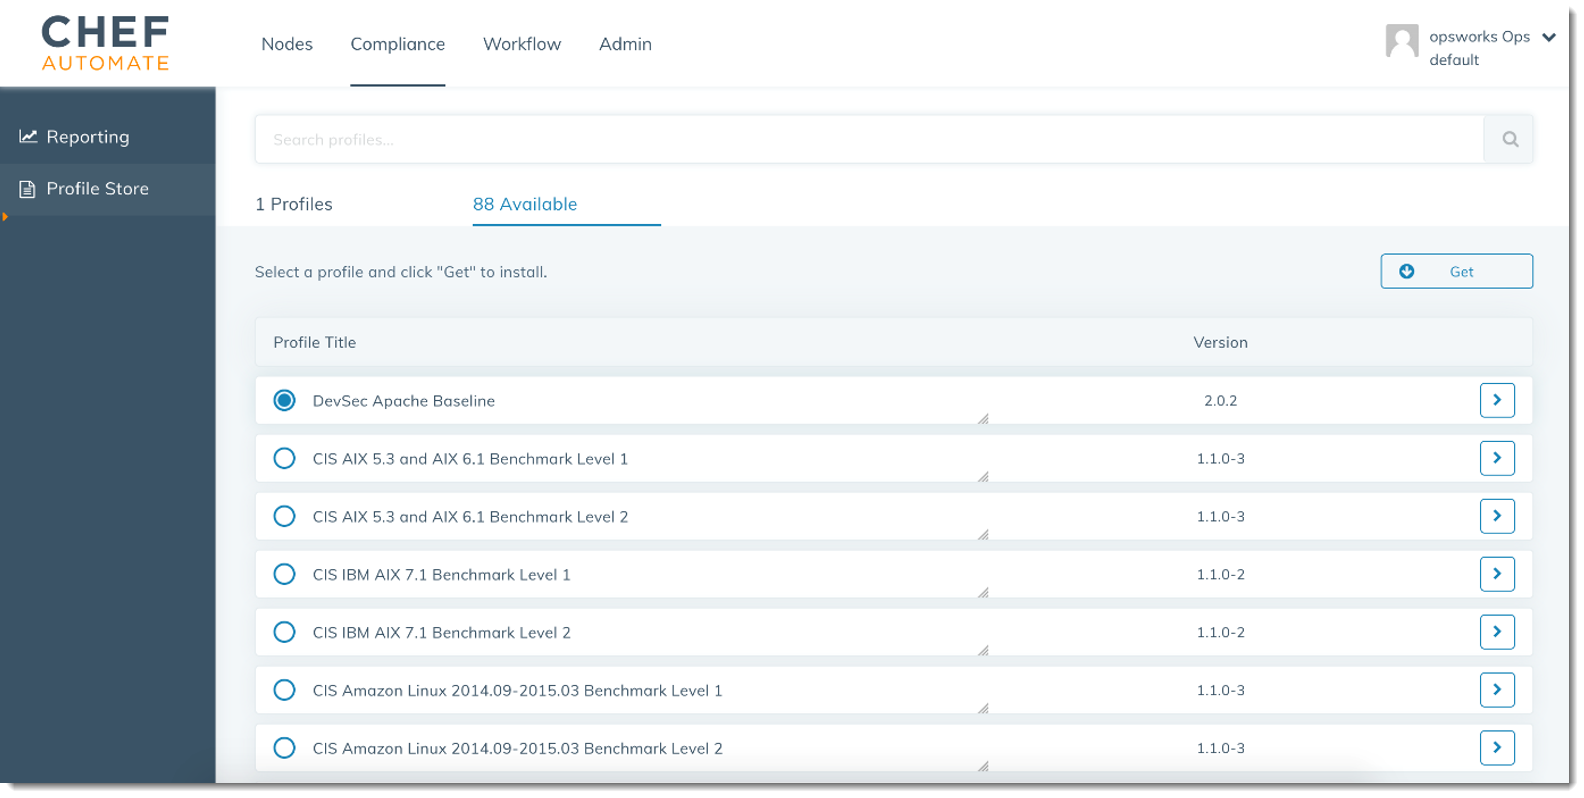 Compliance Scans in AWS OpsWorks for Chef Automate - AWS